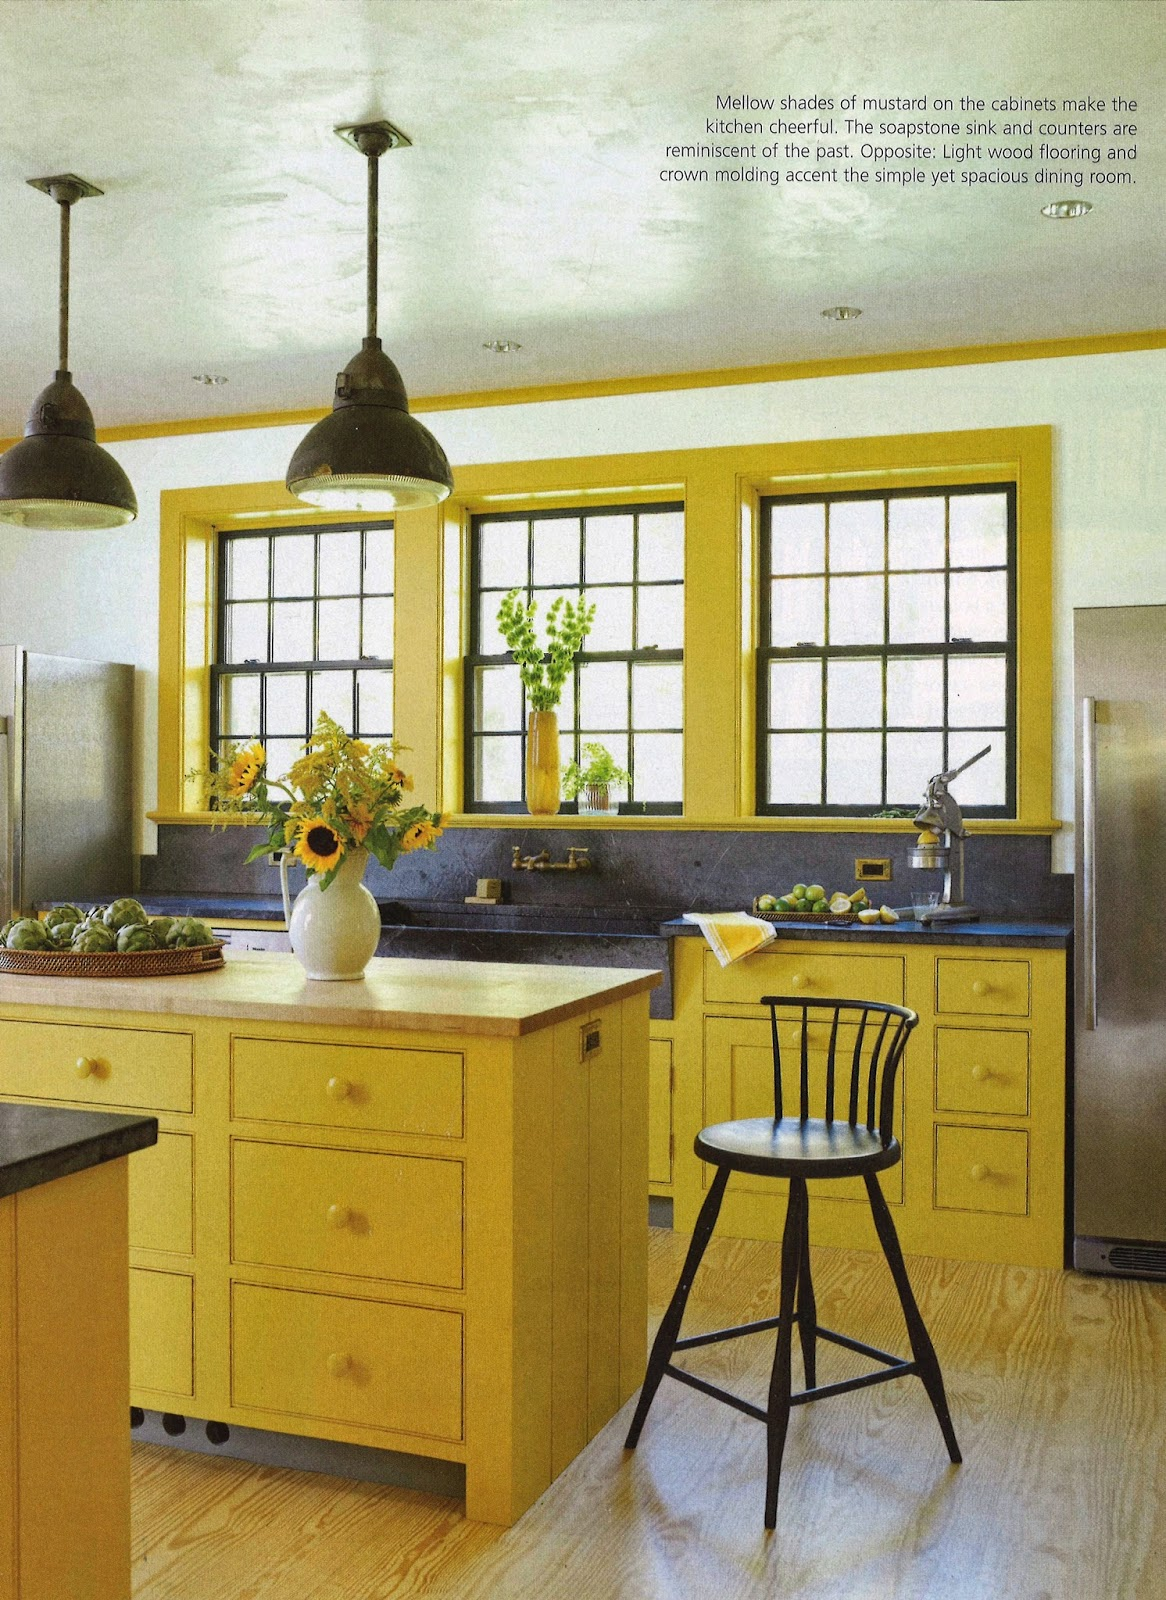 architect design™: Accents of color